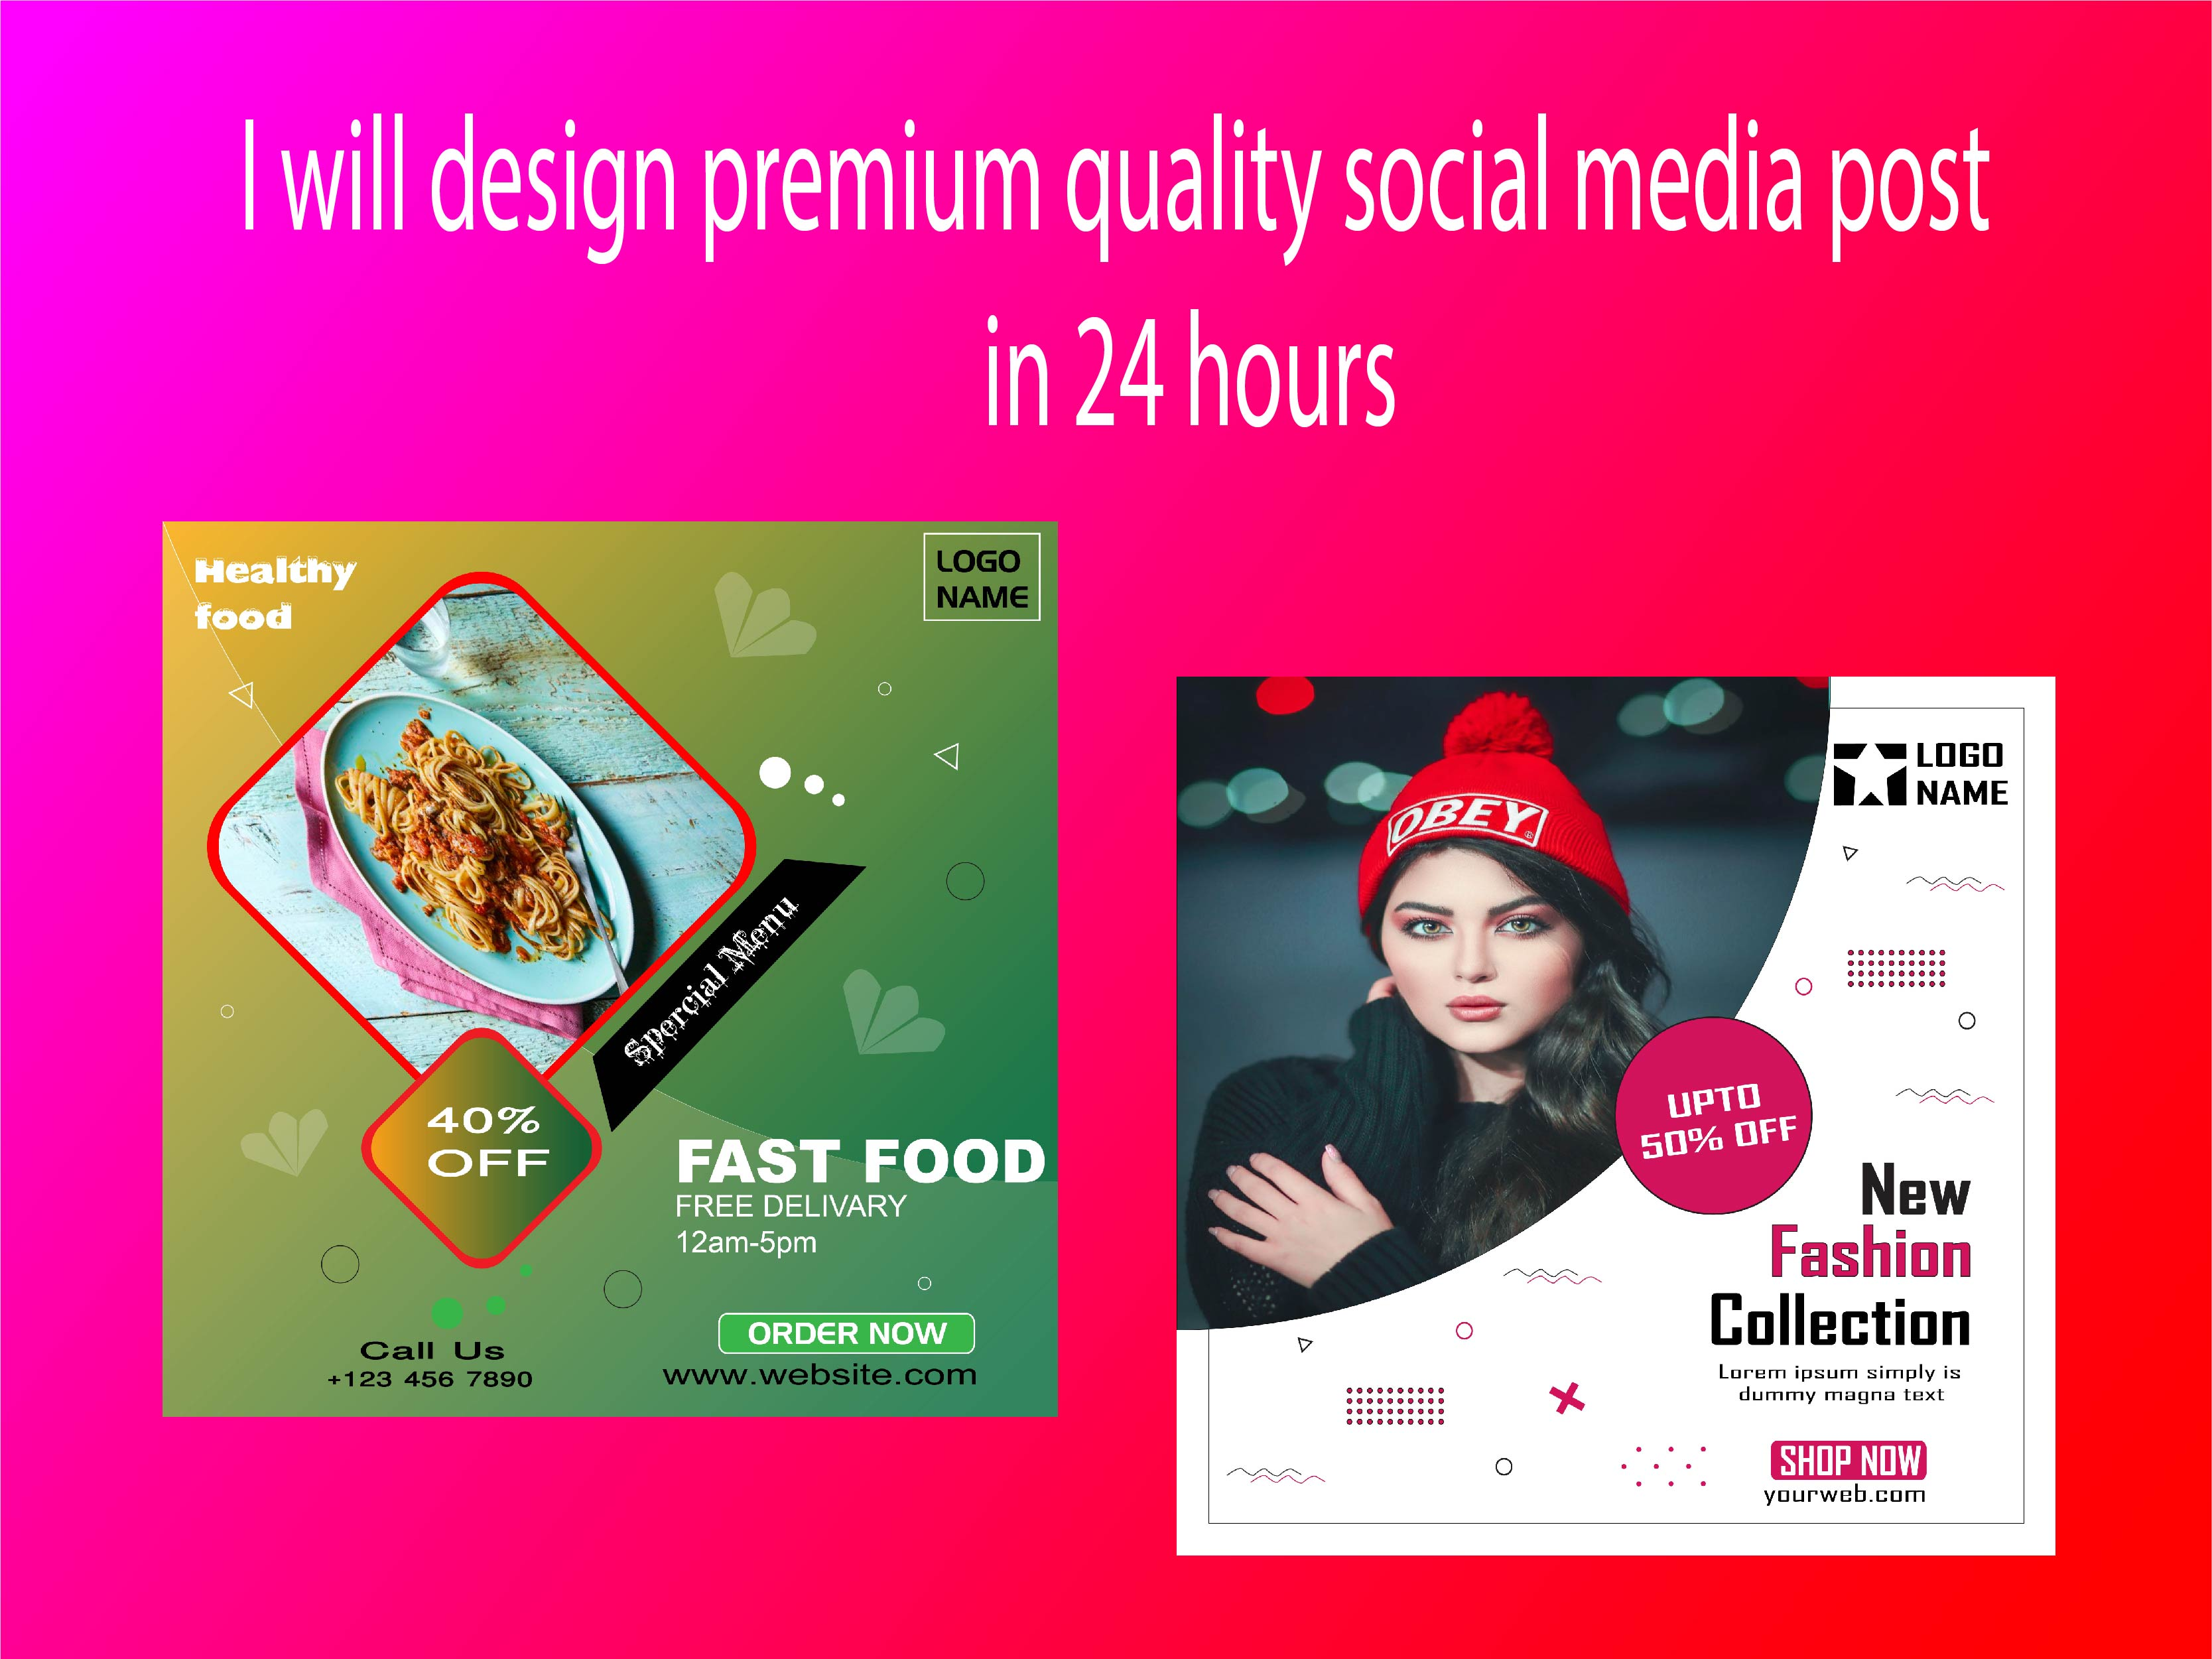 I will design premium quality social media post in 24 hours